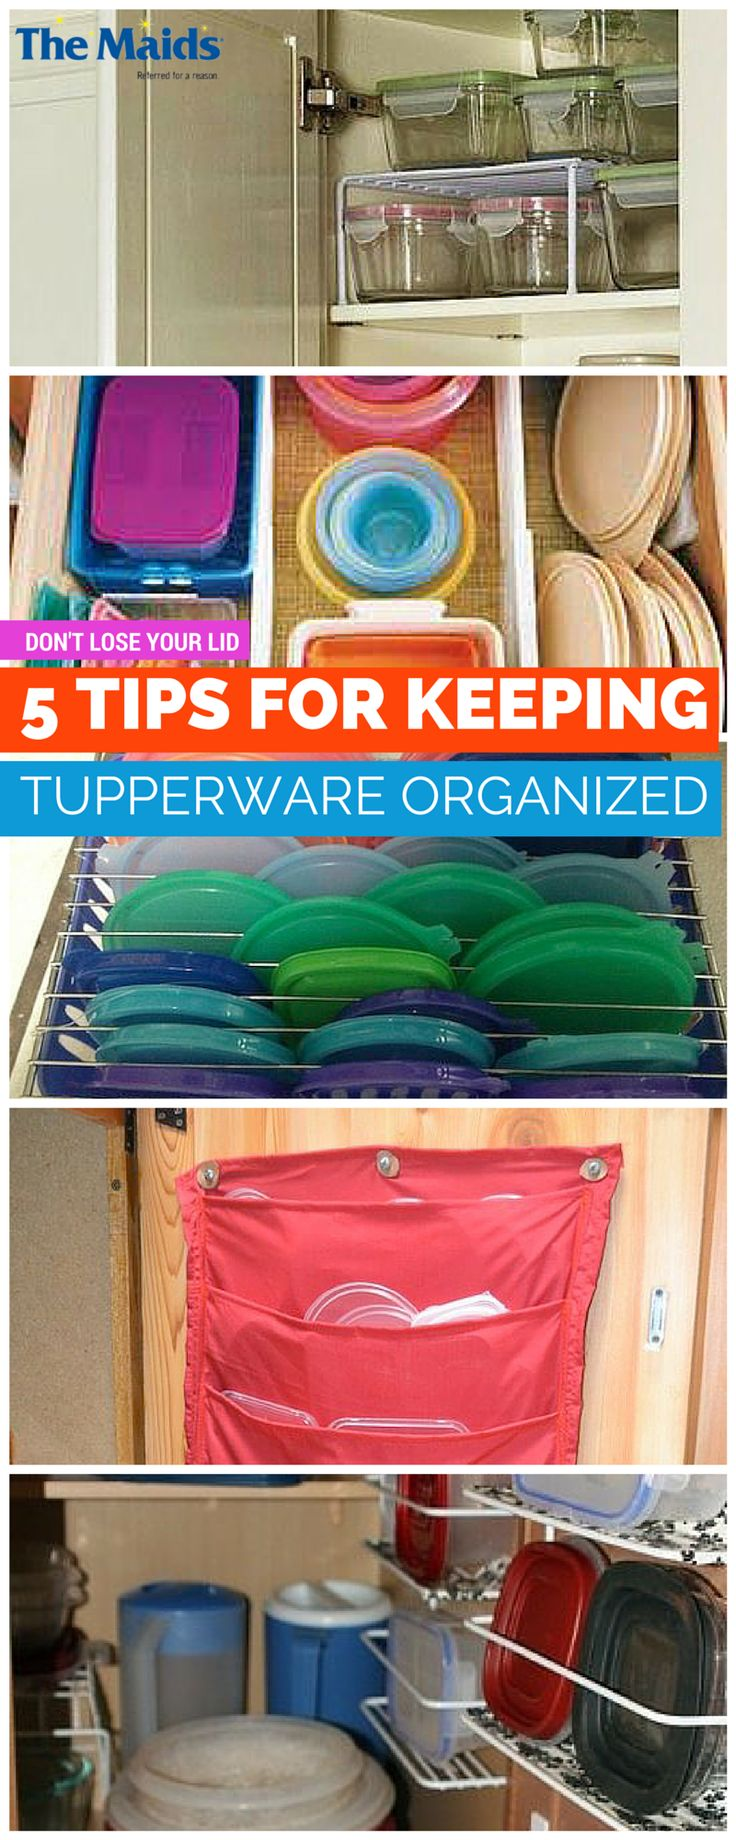 Neatfreak laundry drying rack compact cleaning amp organizing for - We Ve Collected The Best Tips So You Can Organize Your Kitchen Pantry